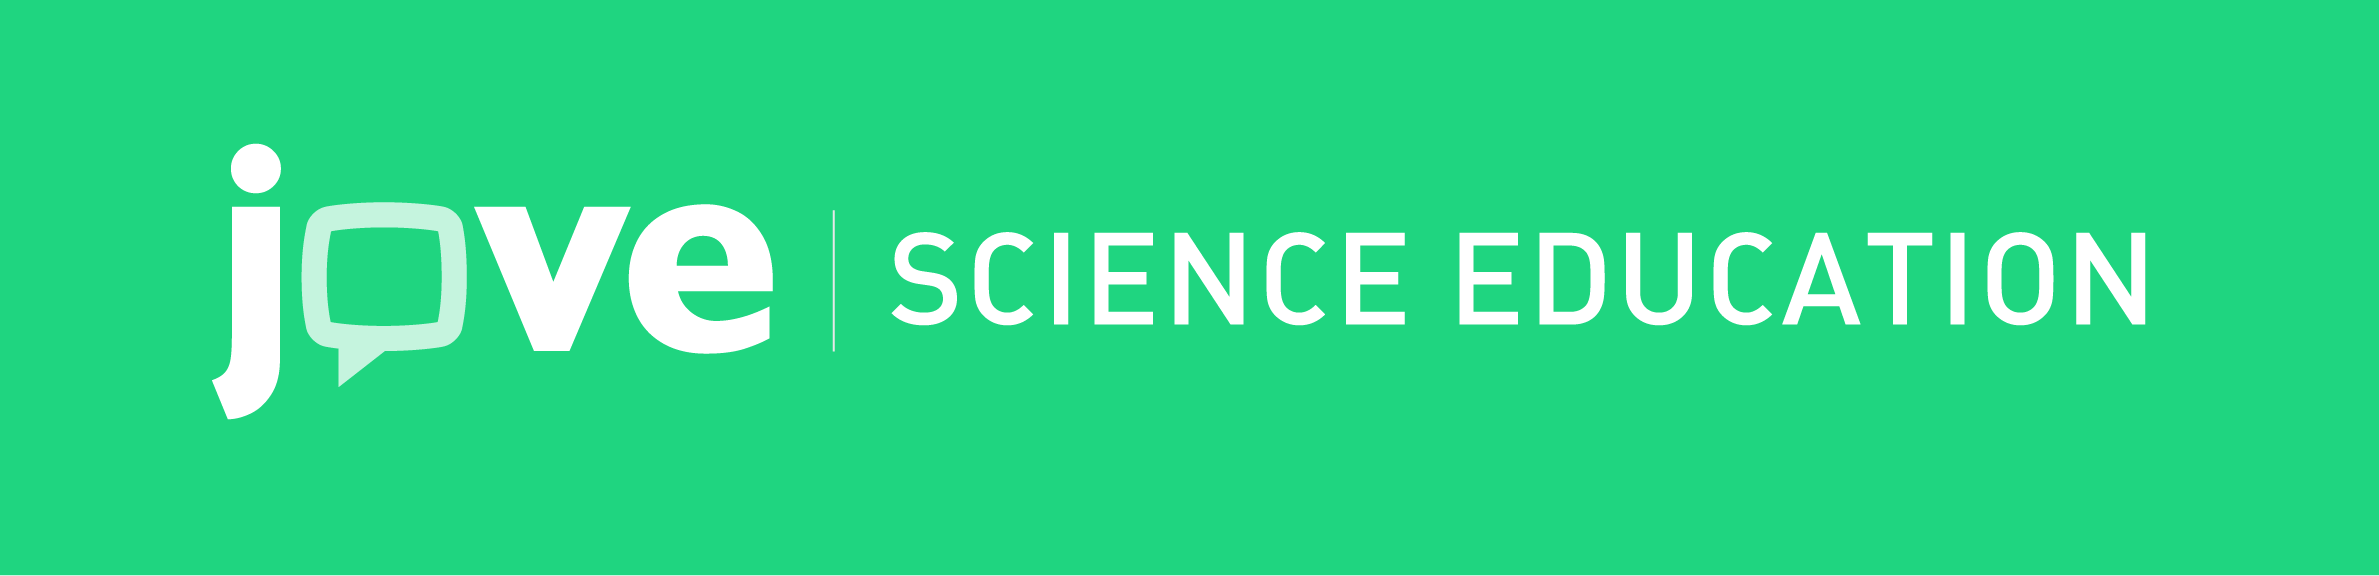 Jove Science Education